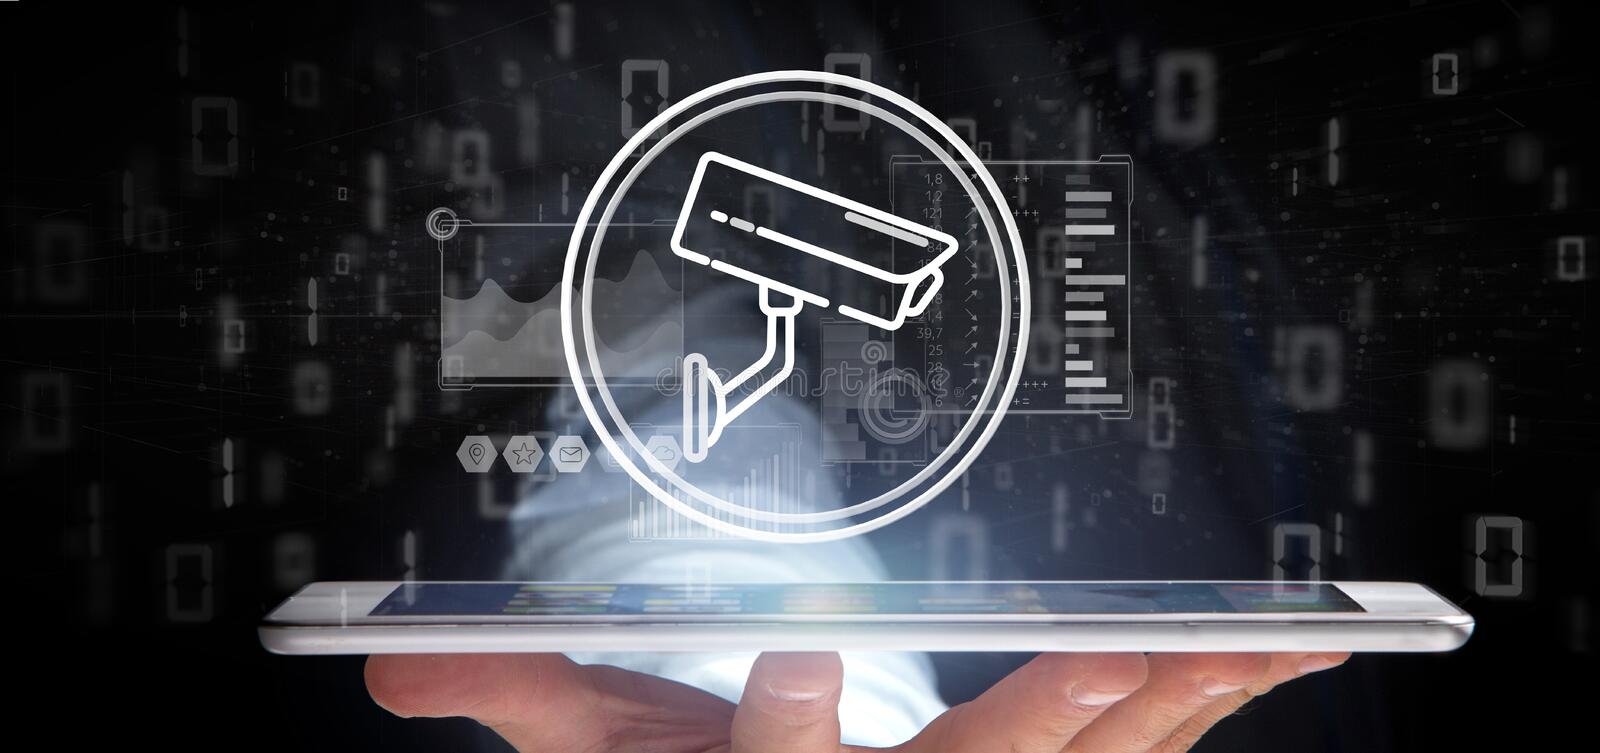 Businessman holding Security camera system icon and statistics data - 3d rendering stock image